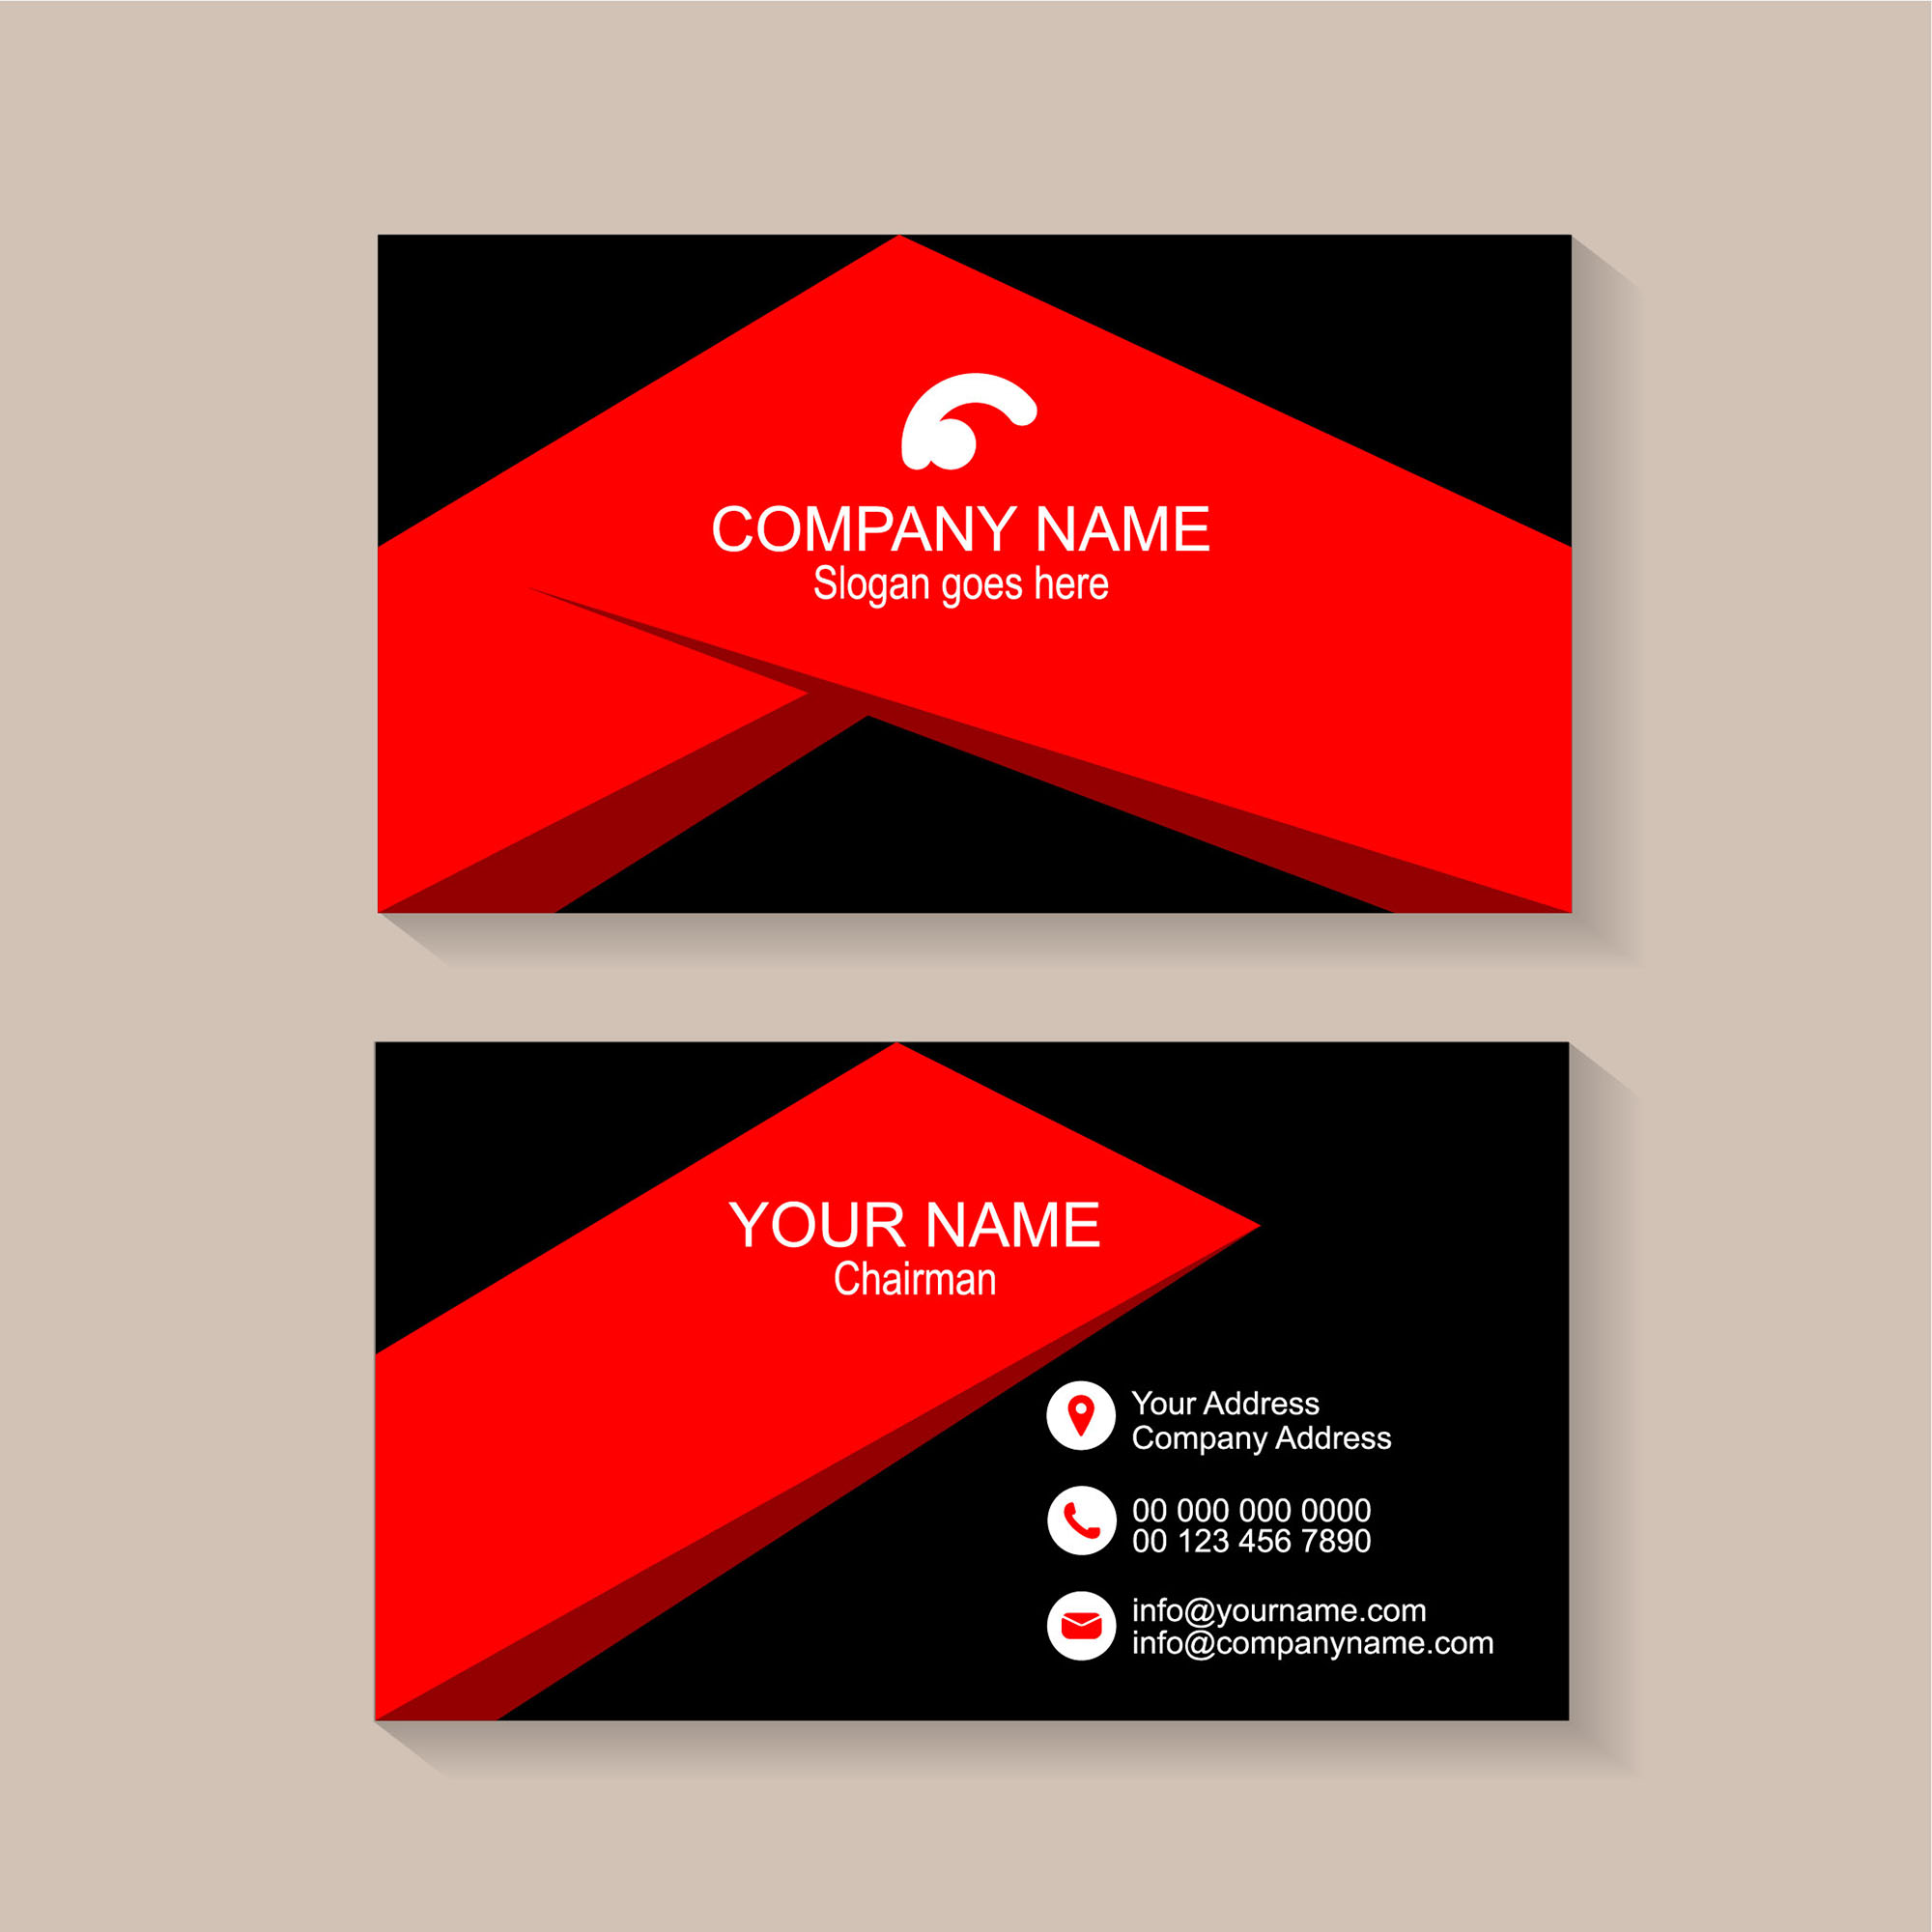 Business card template design free download wisxi business card business cards business card design business card template design templates wajeb Image collections